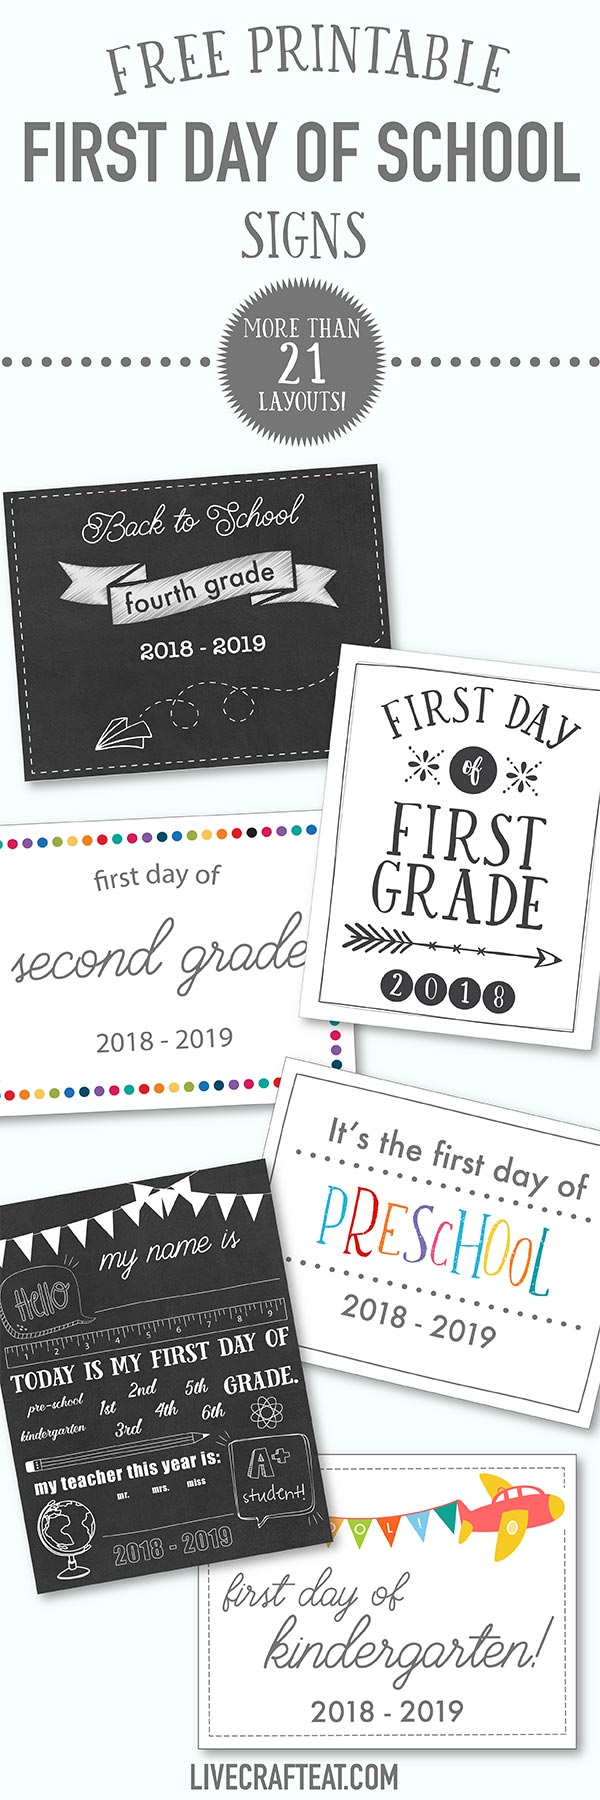 medium resolution of First Day Of School Printables - FREE - 21 Layouts of Pre-K - 6th   Live  Craft Eat